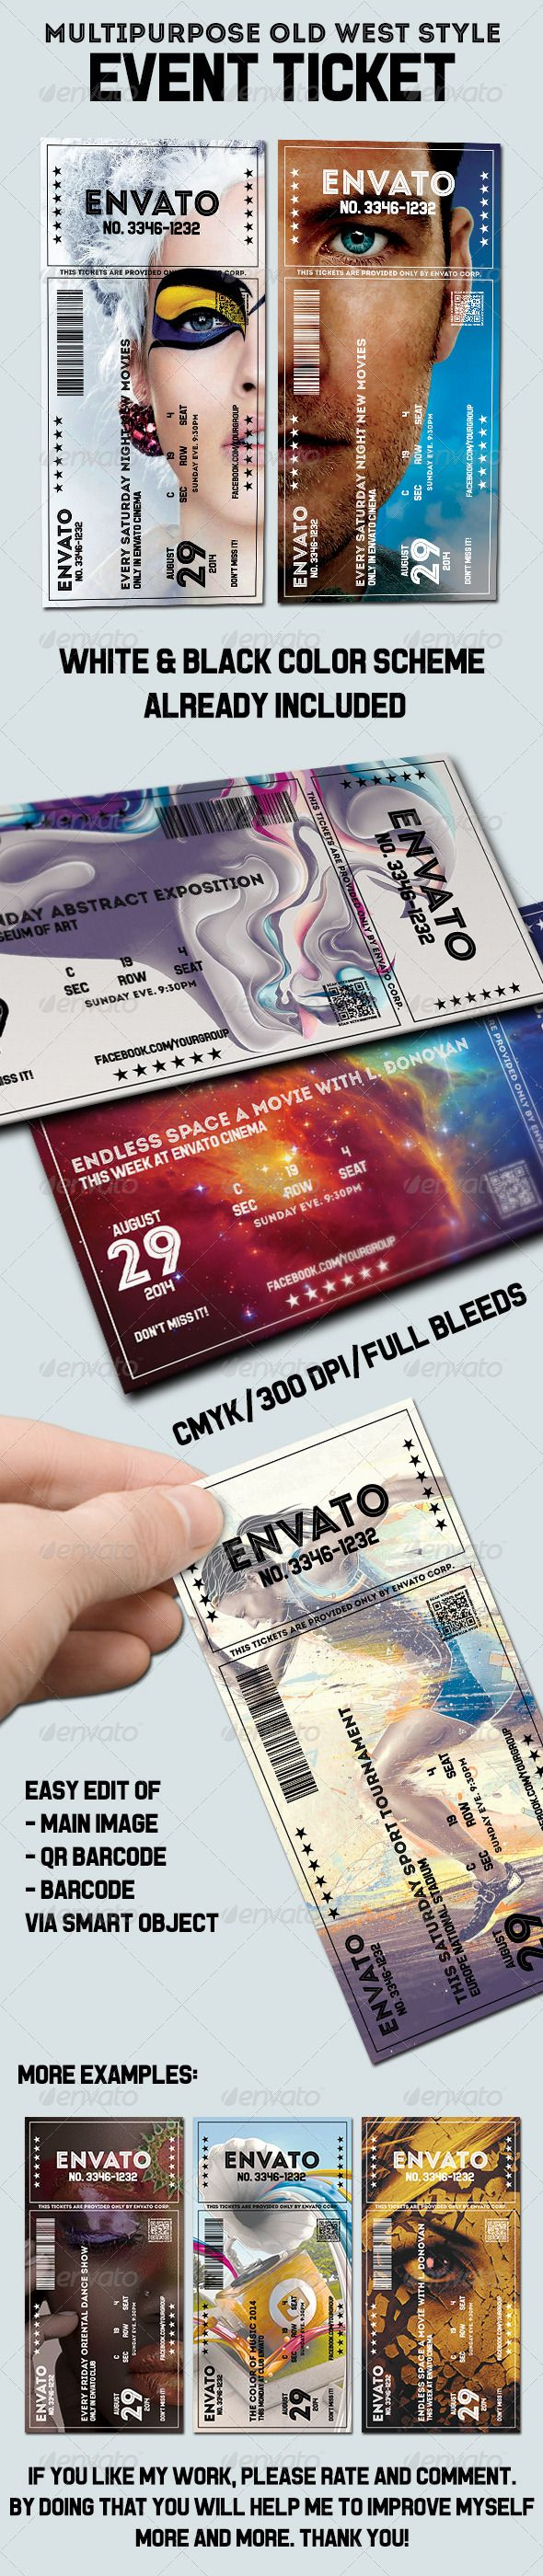 Concert Ticket Template Free Download Alluring 19 Best Voucher Images On Pinterest  Gift Voucher Design Gift .